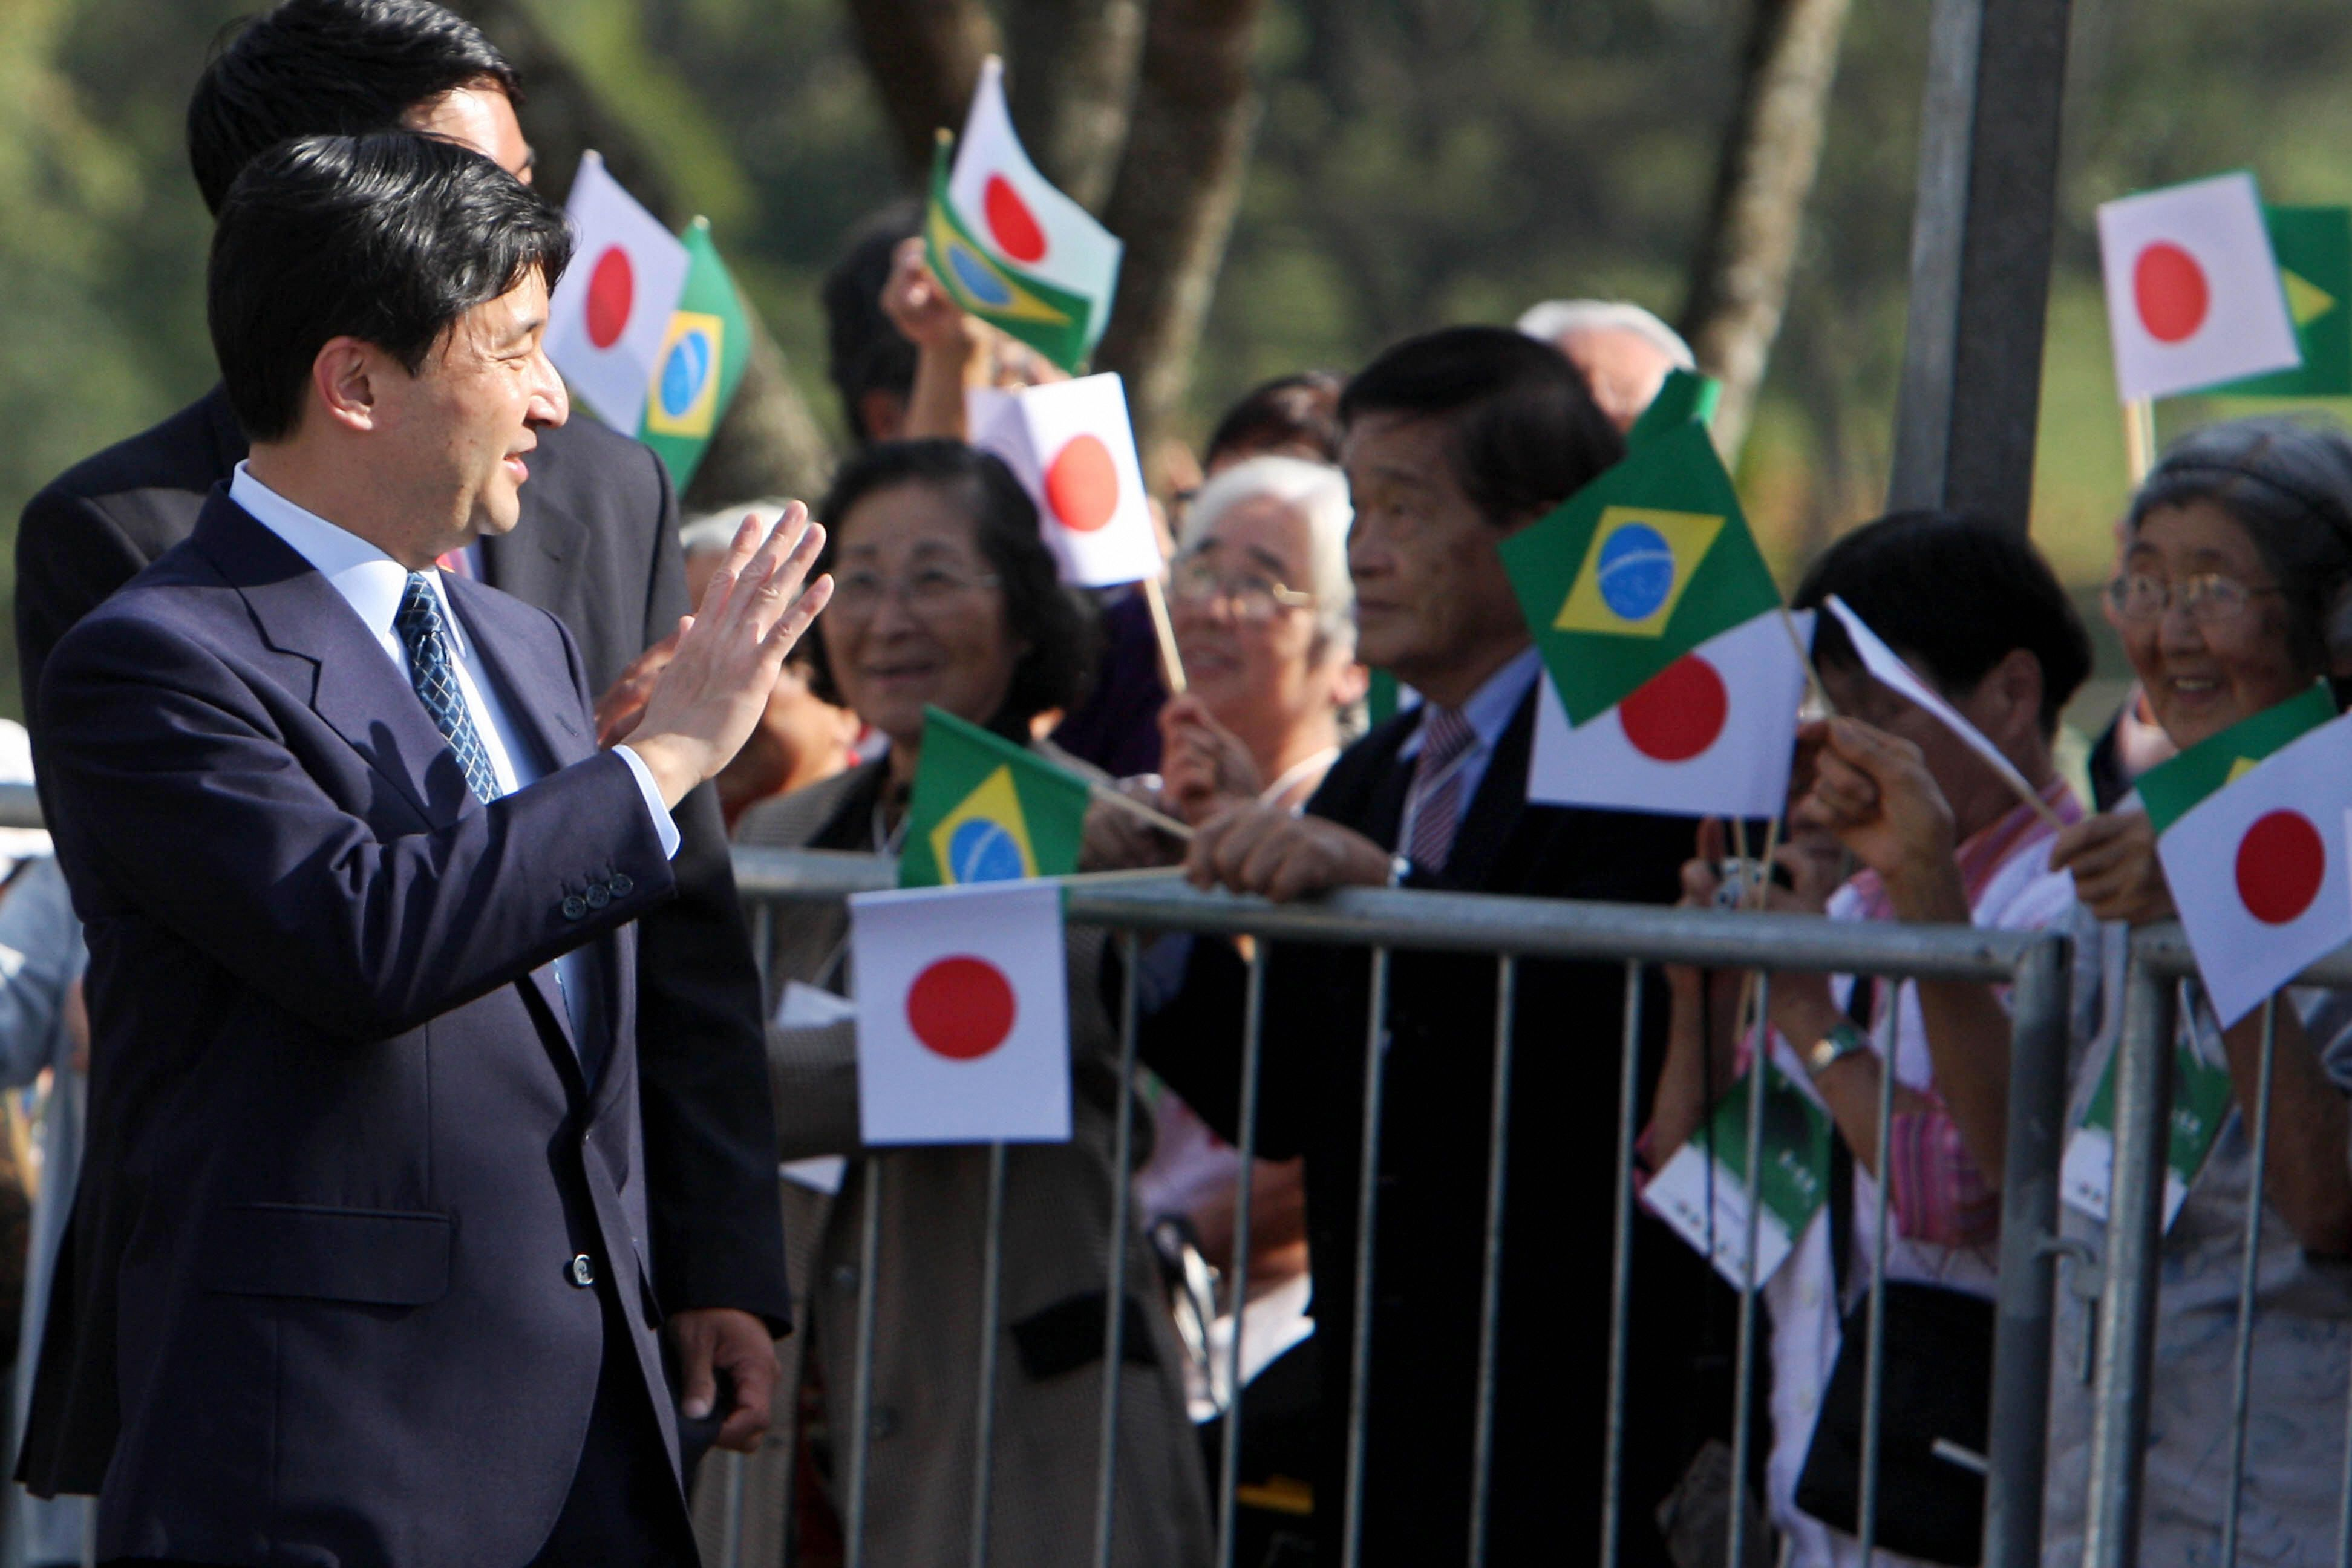 Japan's Crown Prince Naruhito (L) waves to the crowd during a ceremony in honour of Japanese immigrants in Sao Paulo on June 20, 2008. Prince Naruhito is in Brazil on a 12-day visit to take part in the celebrations marking the 100th anniversary of Japanese immigration to the South American nation, where exists the largest Japanese community outside of Japan. AFP PHOTO/Nelson ALMEIDA. (Photo credit should read NELSON ALMEIDA/AFP/Getty Images)